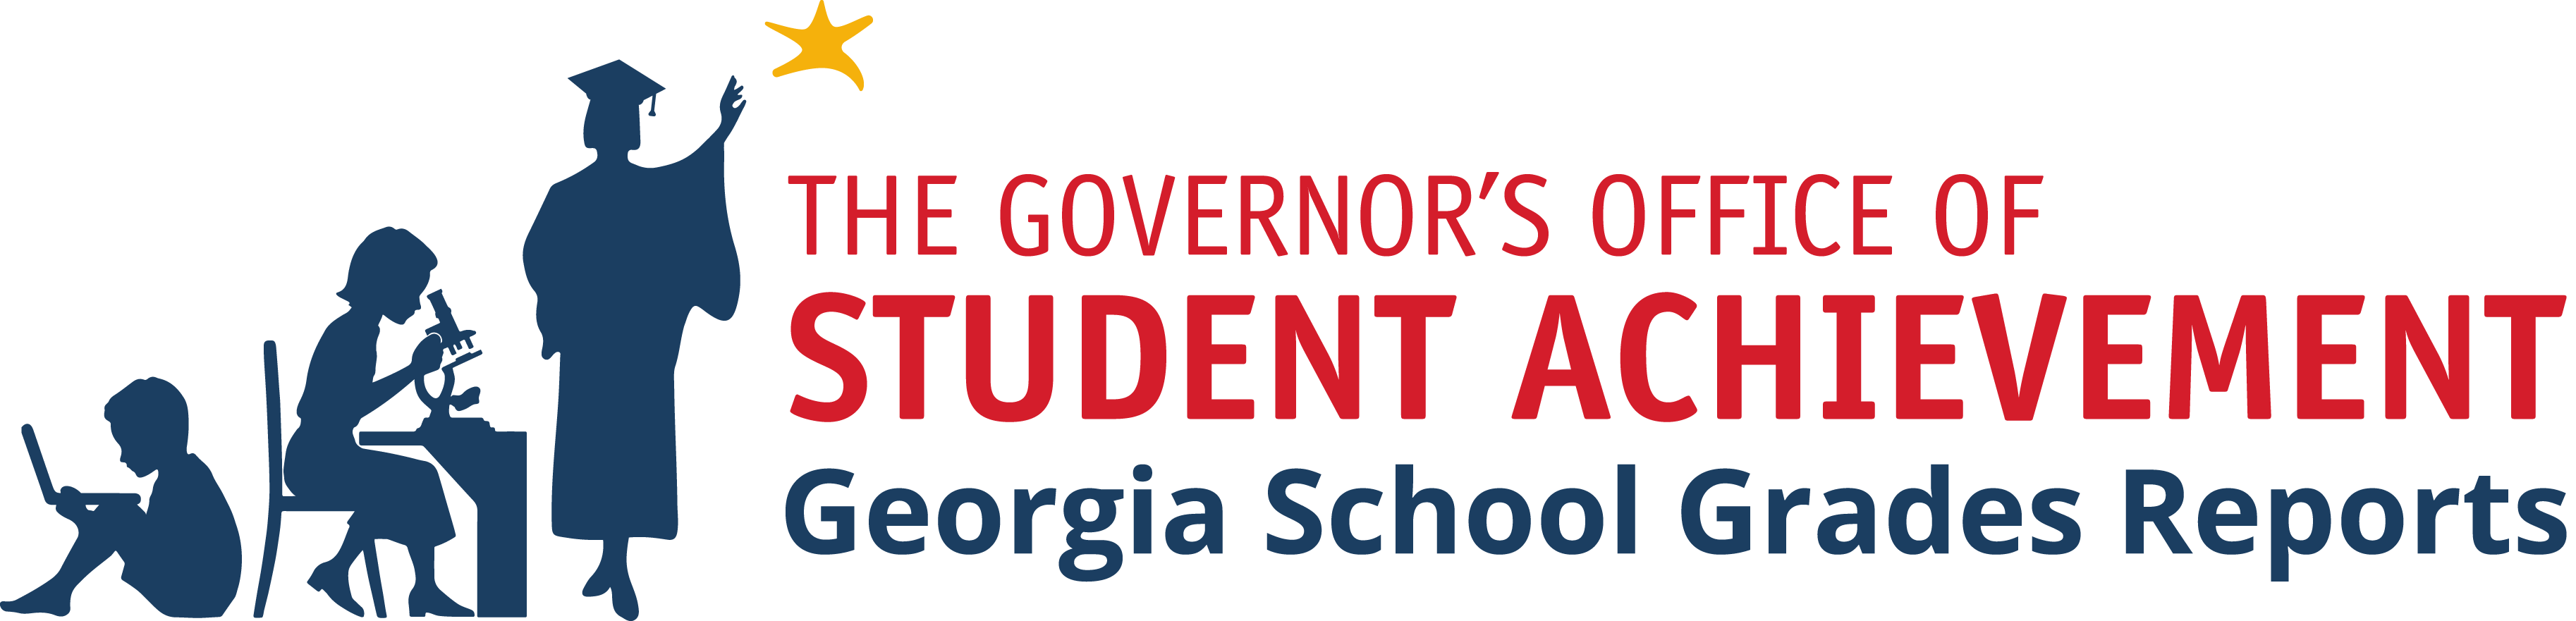 GA Governer's Office of School Achievement School Grades Reports